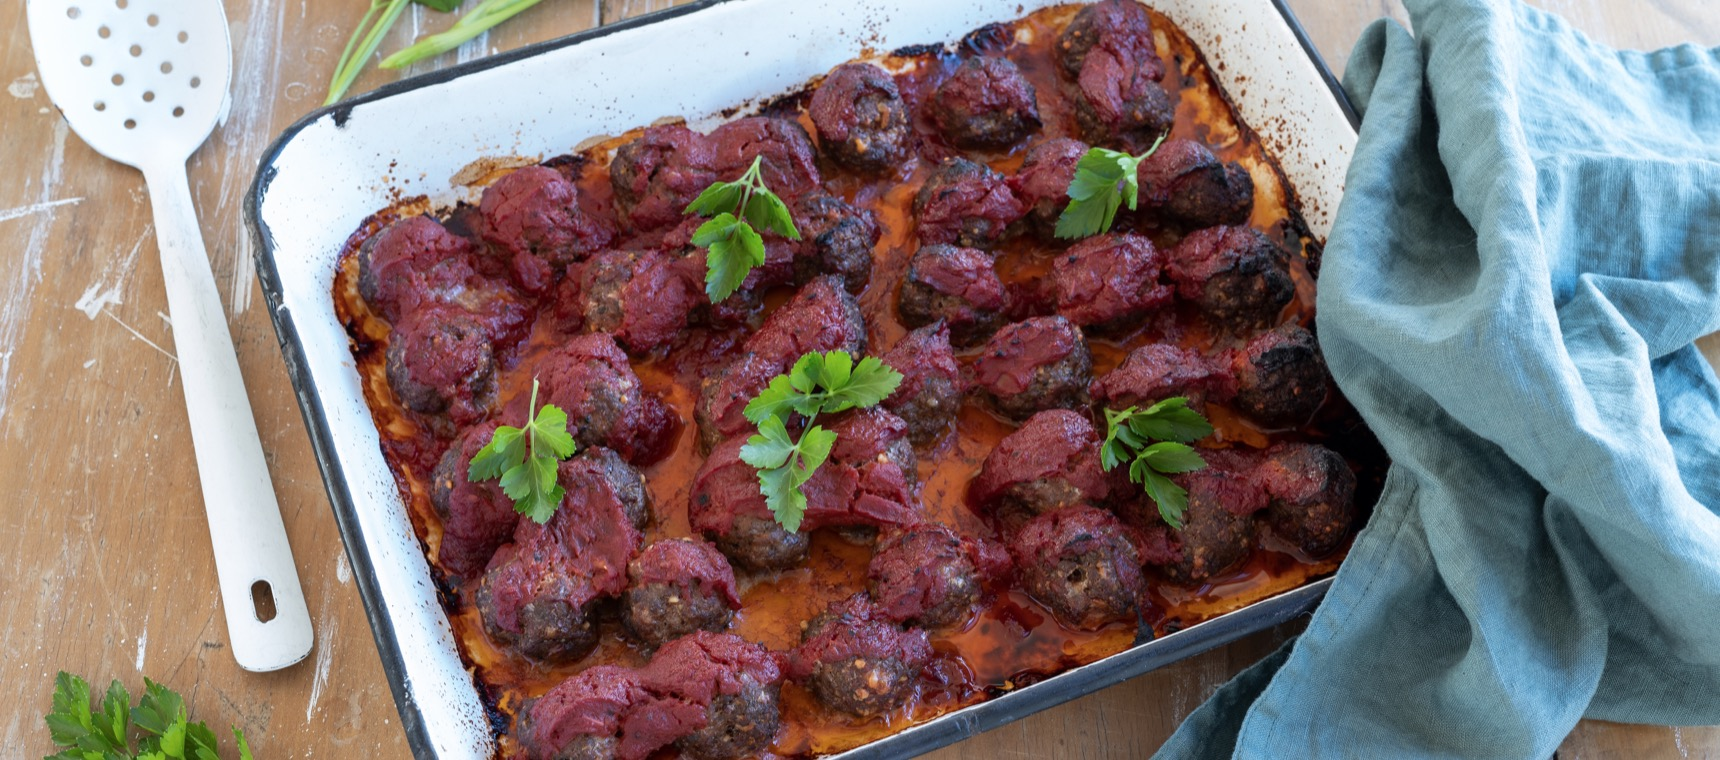 Oven Baked Pizza Meatballs in Homemade Tomato Sauce